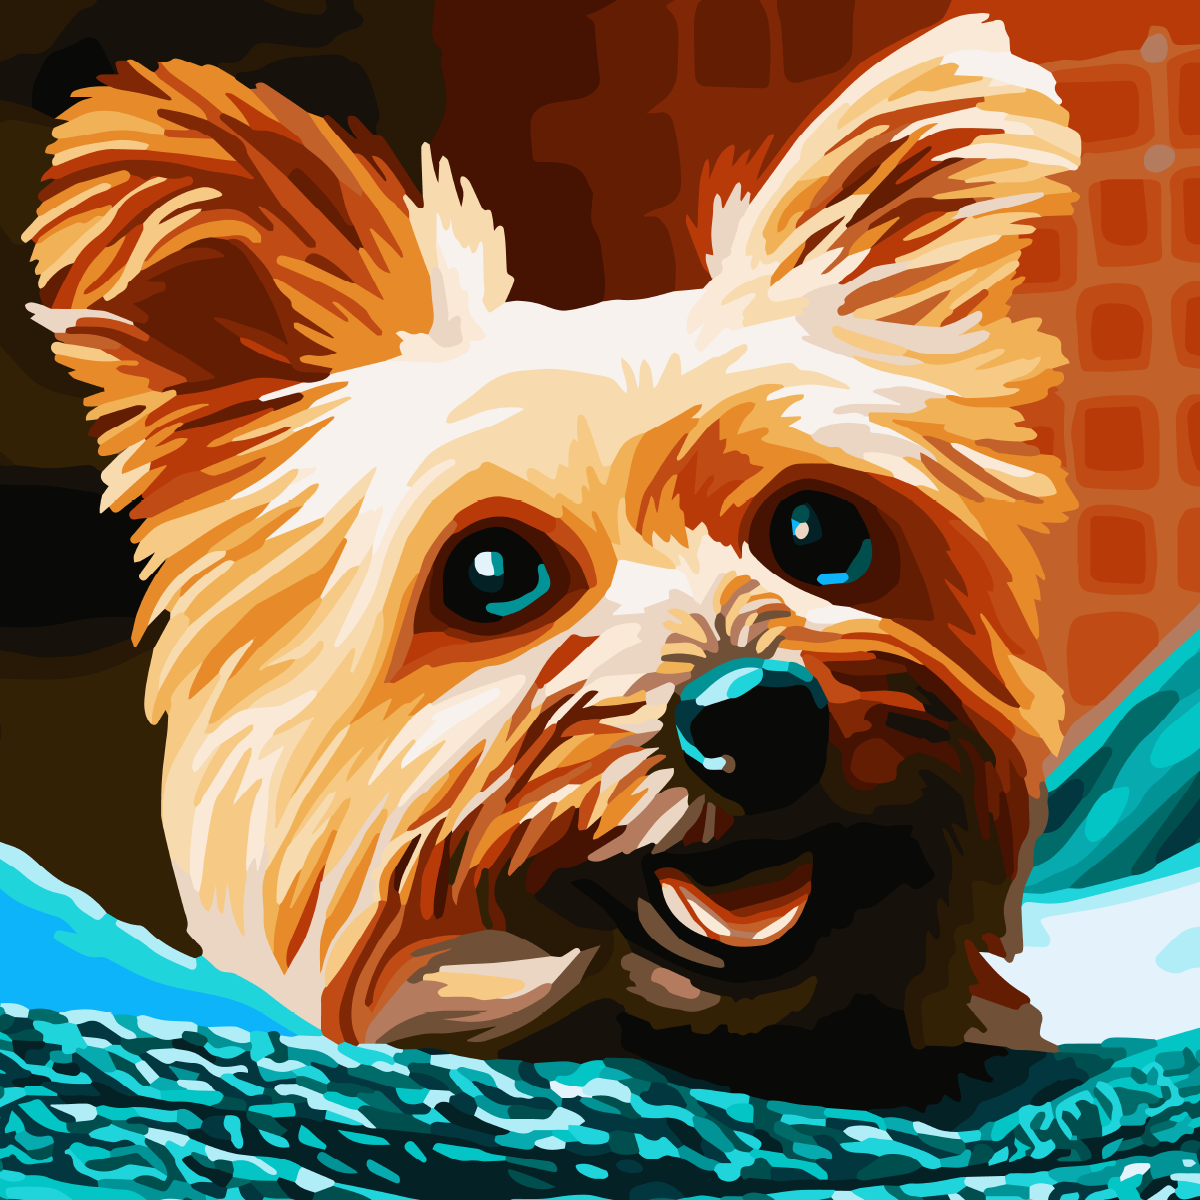 Coloring This Cute Dog Is A Great Pleasure In 2020 Happy Paintings April Art Coloring Pictures